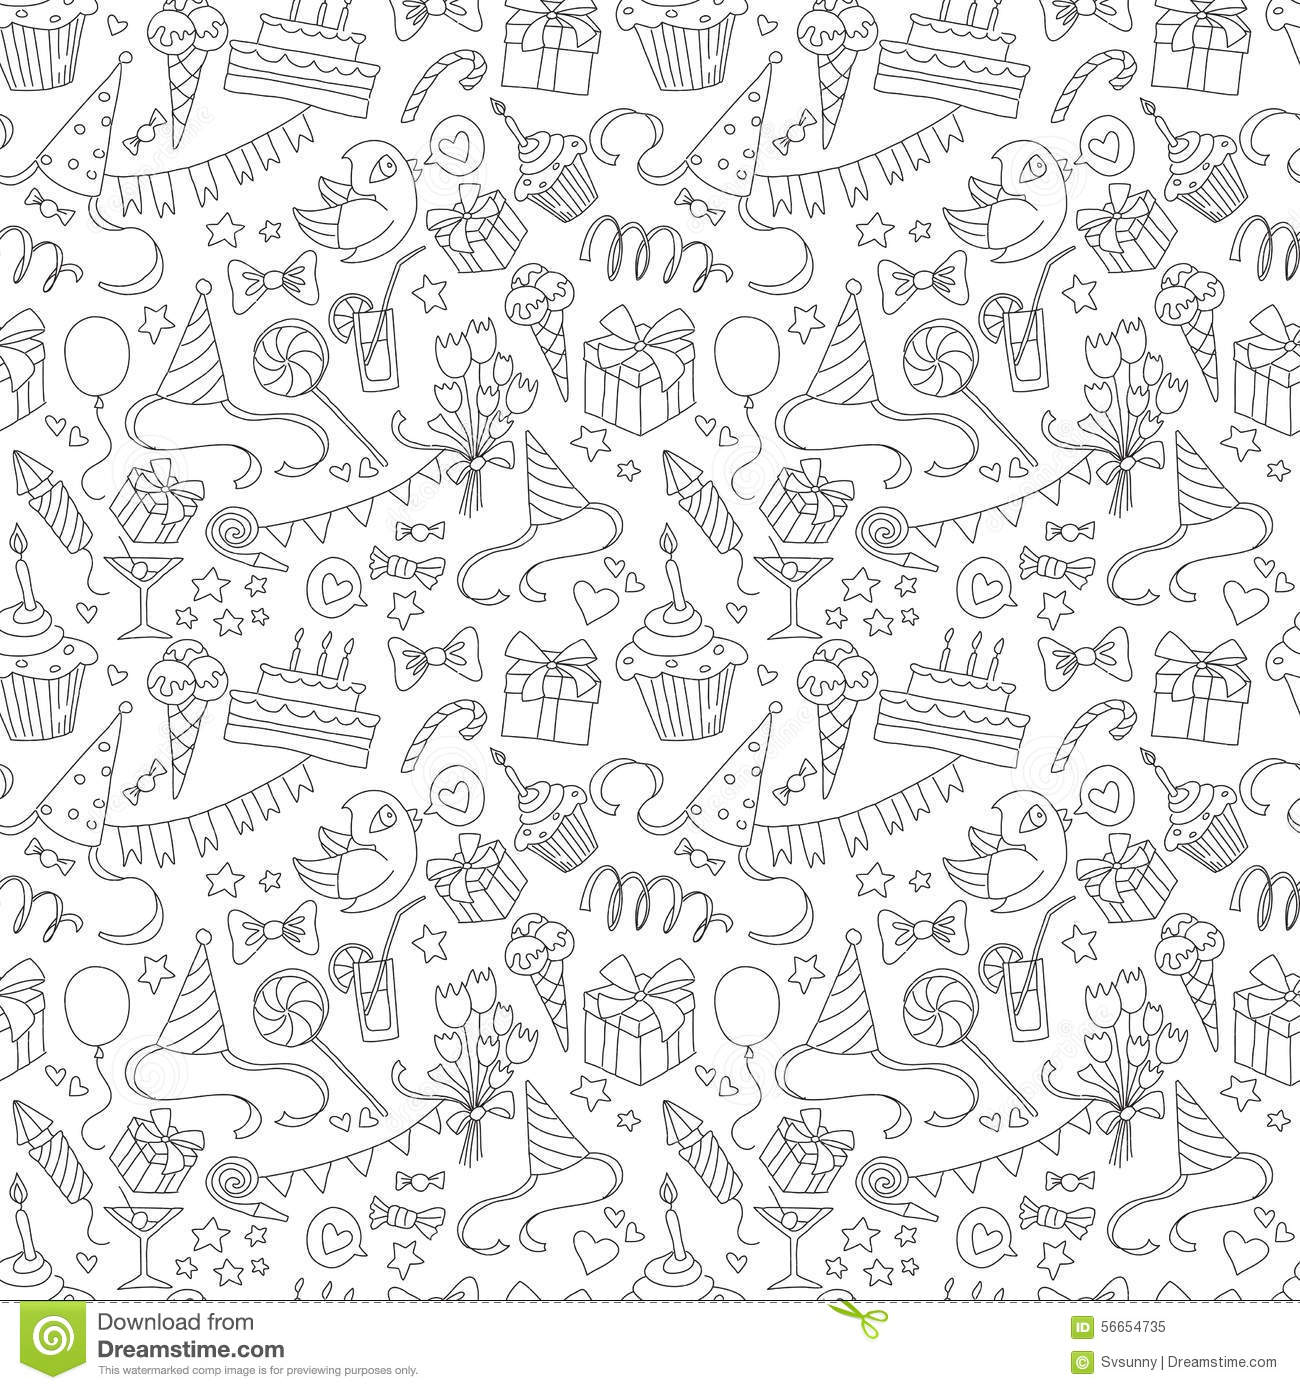 happy birthday party doodle black and white seamless pattern stock